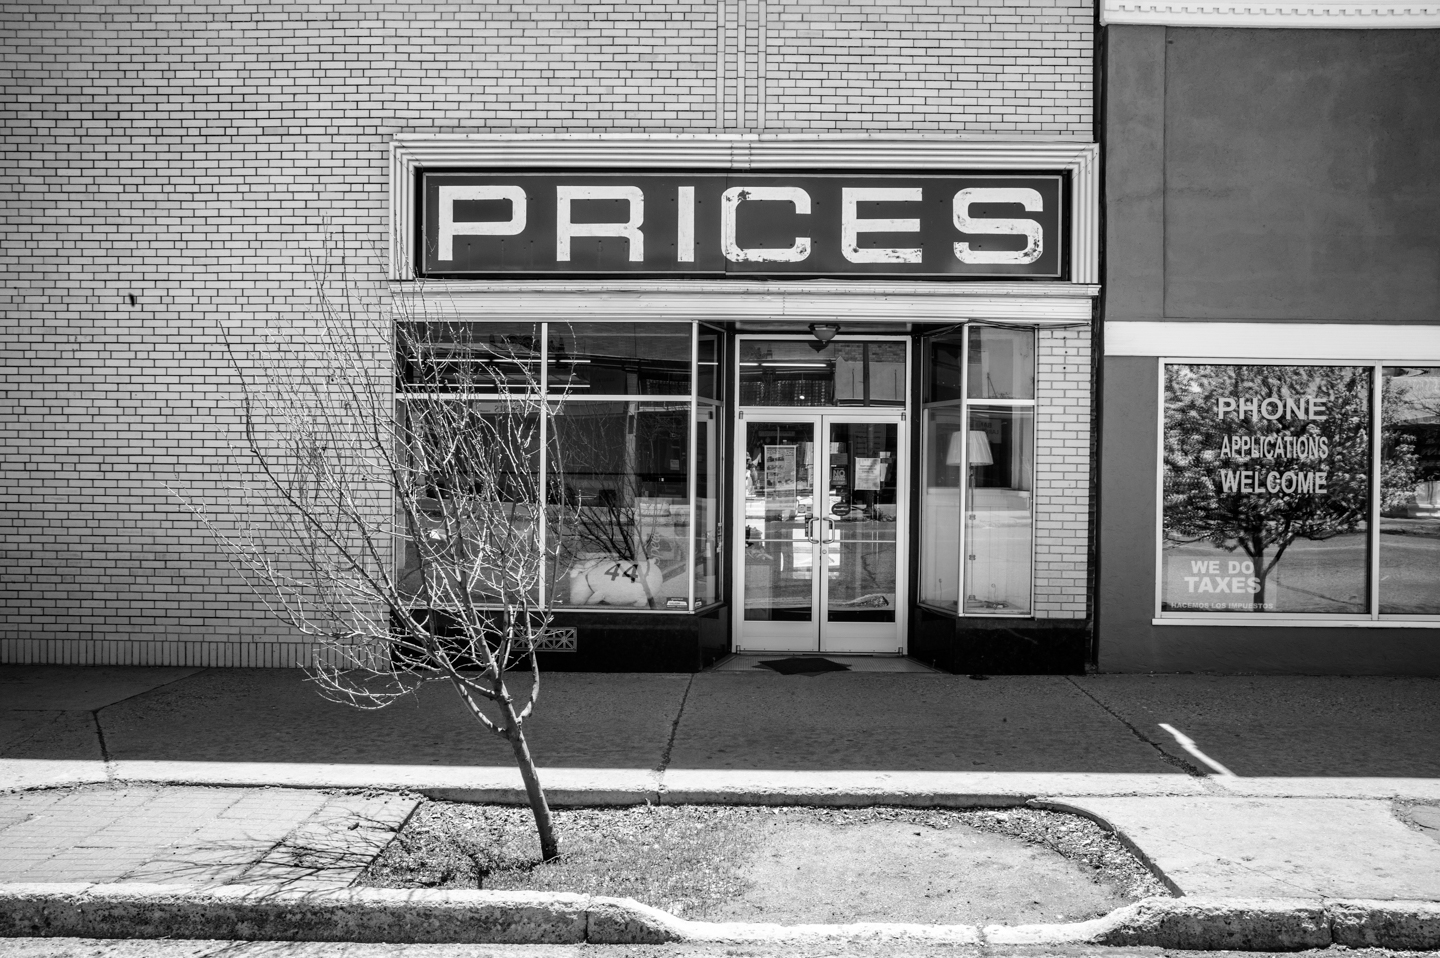 Photograph, Black and White, Place, Sense of Place, Prices, Las Vegas, New Mexico, April 24, 2020